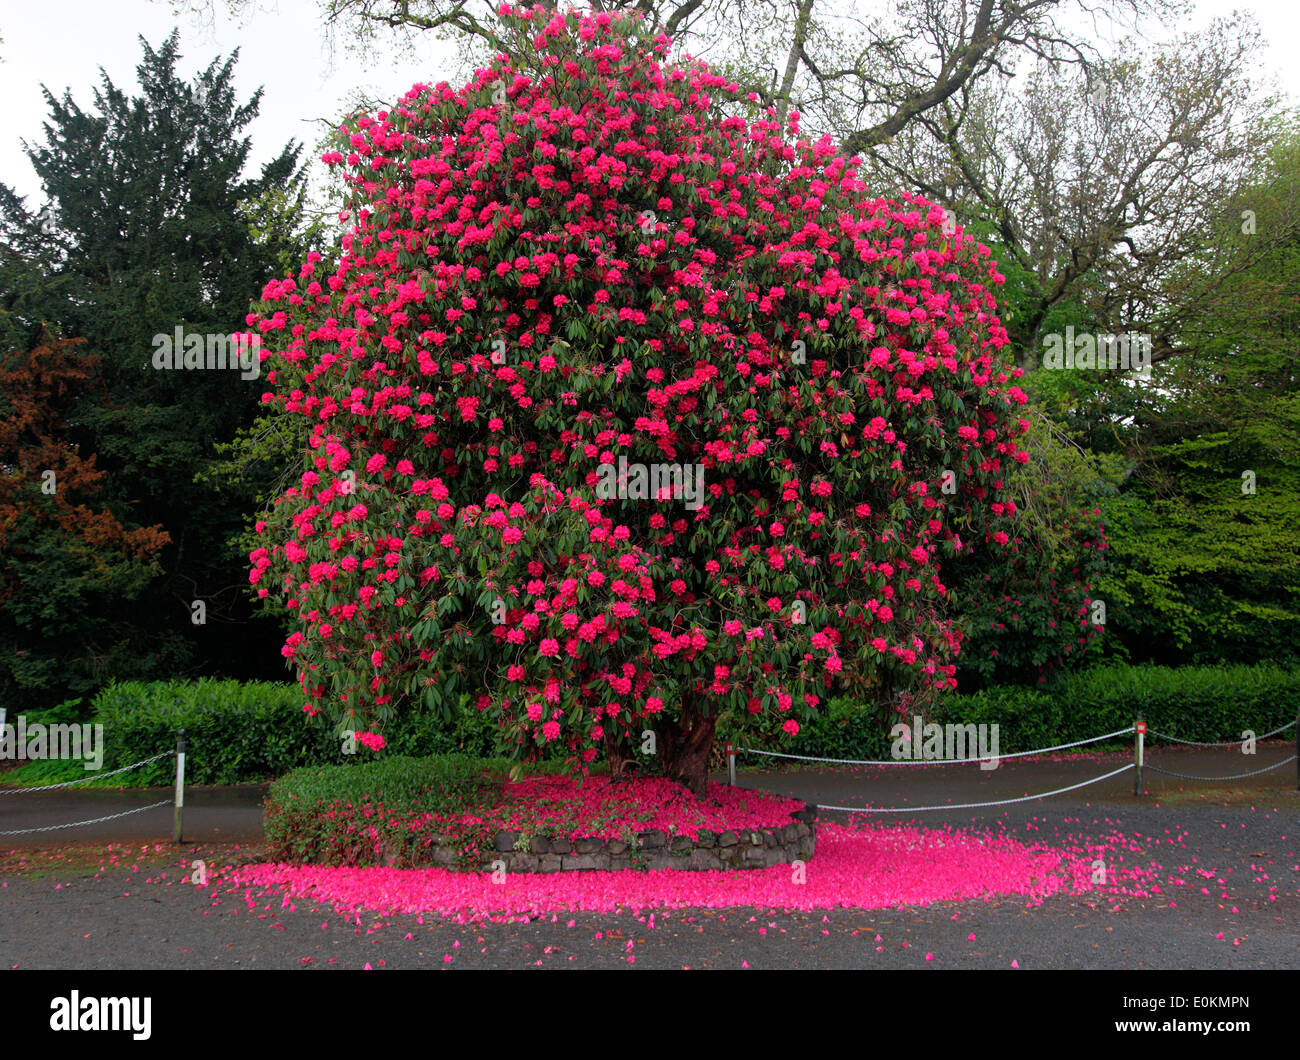 Virginia Park Lodge rhododendron - Stock Image